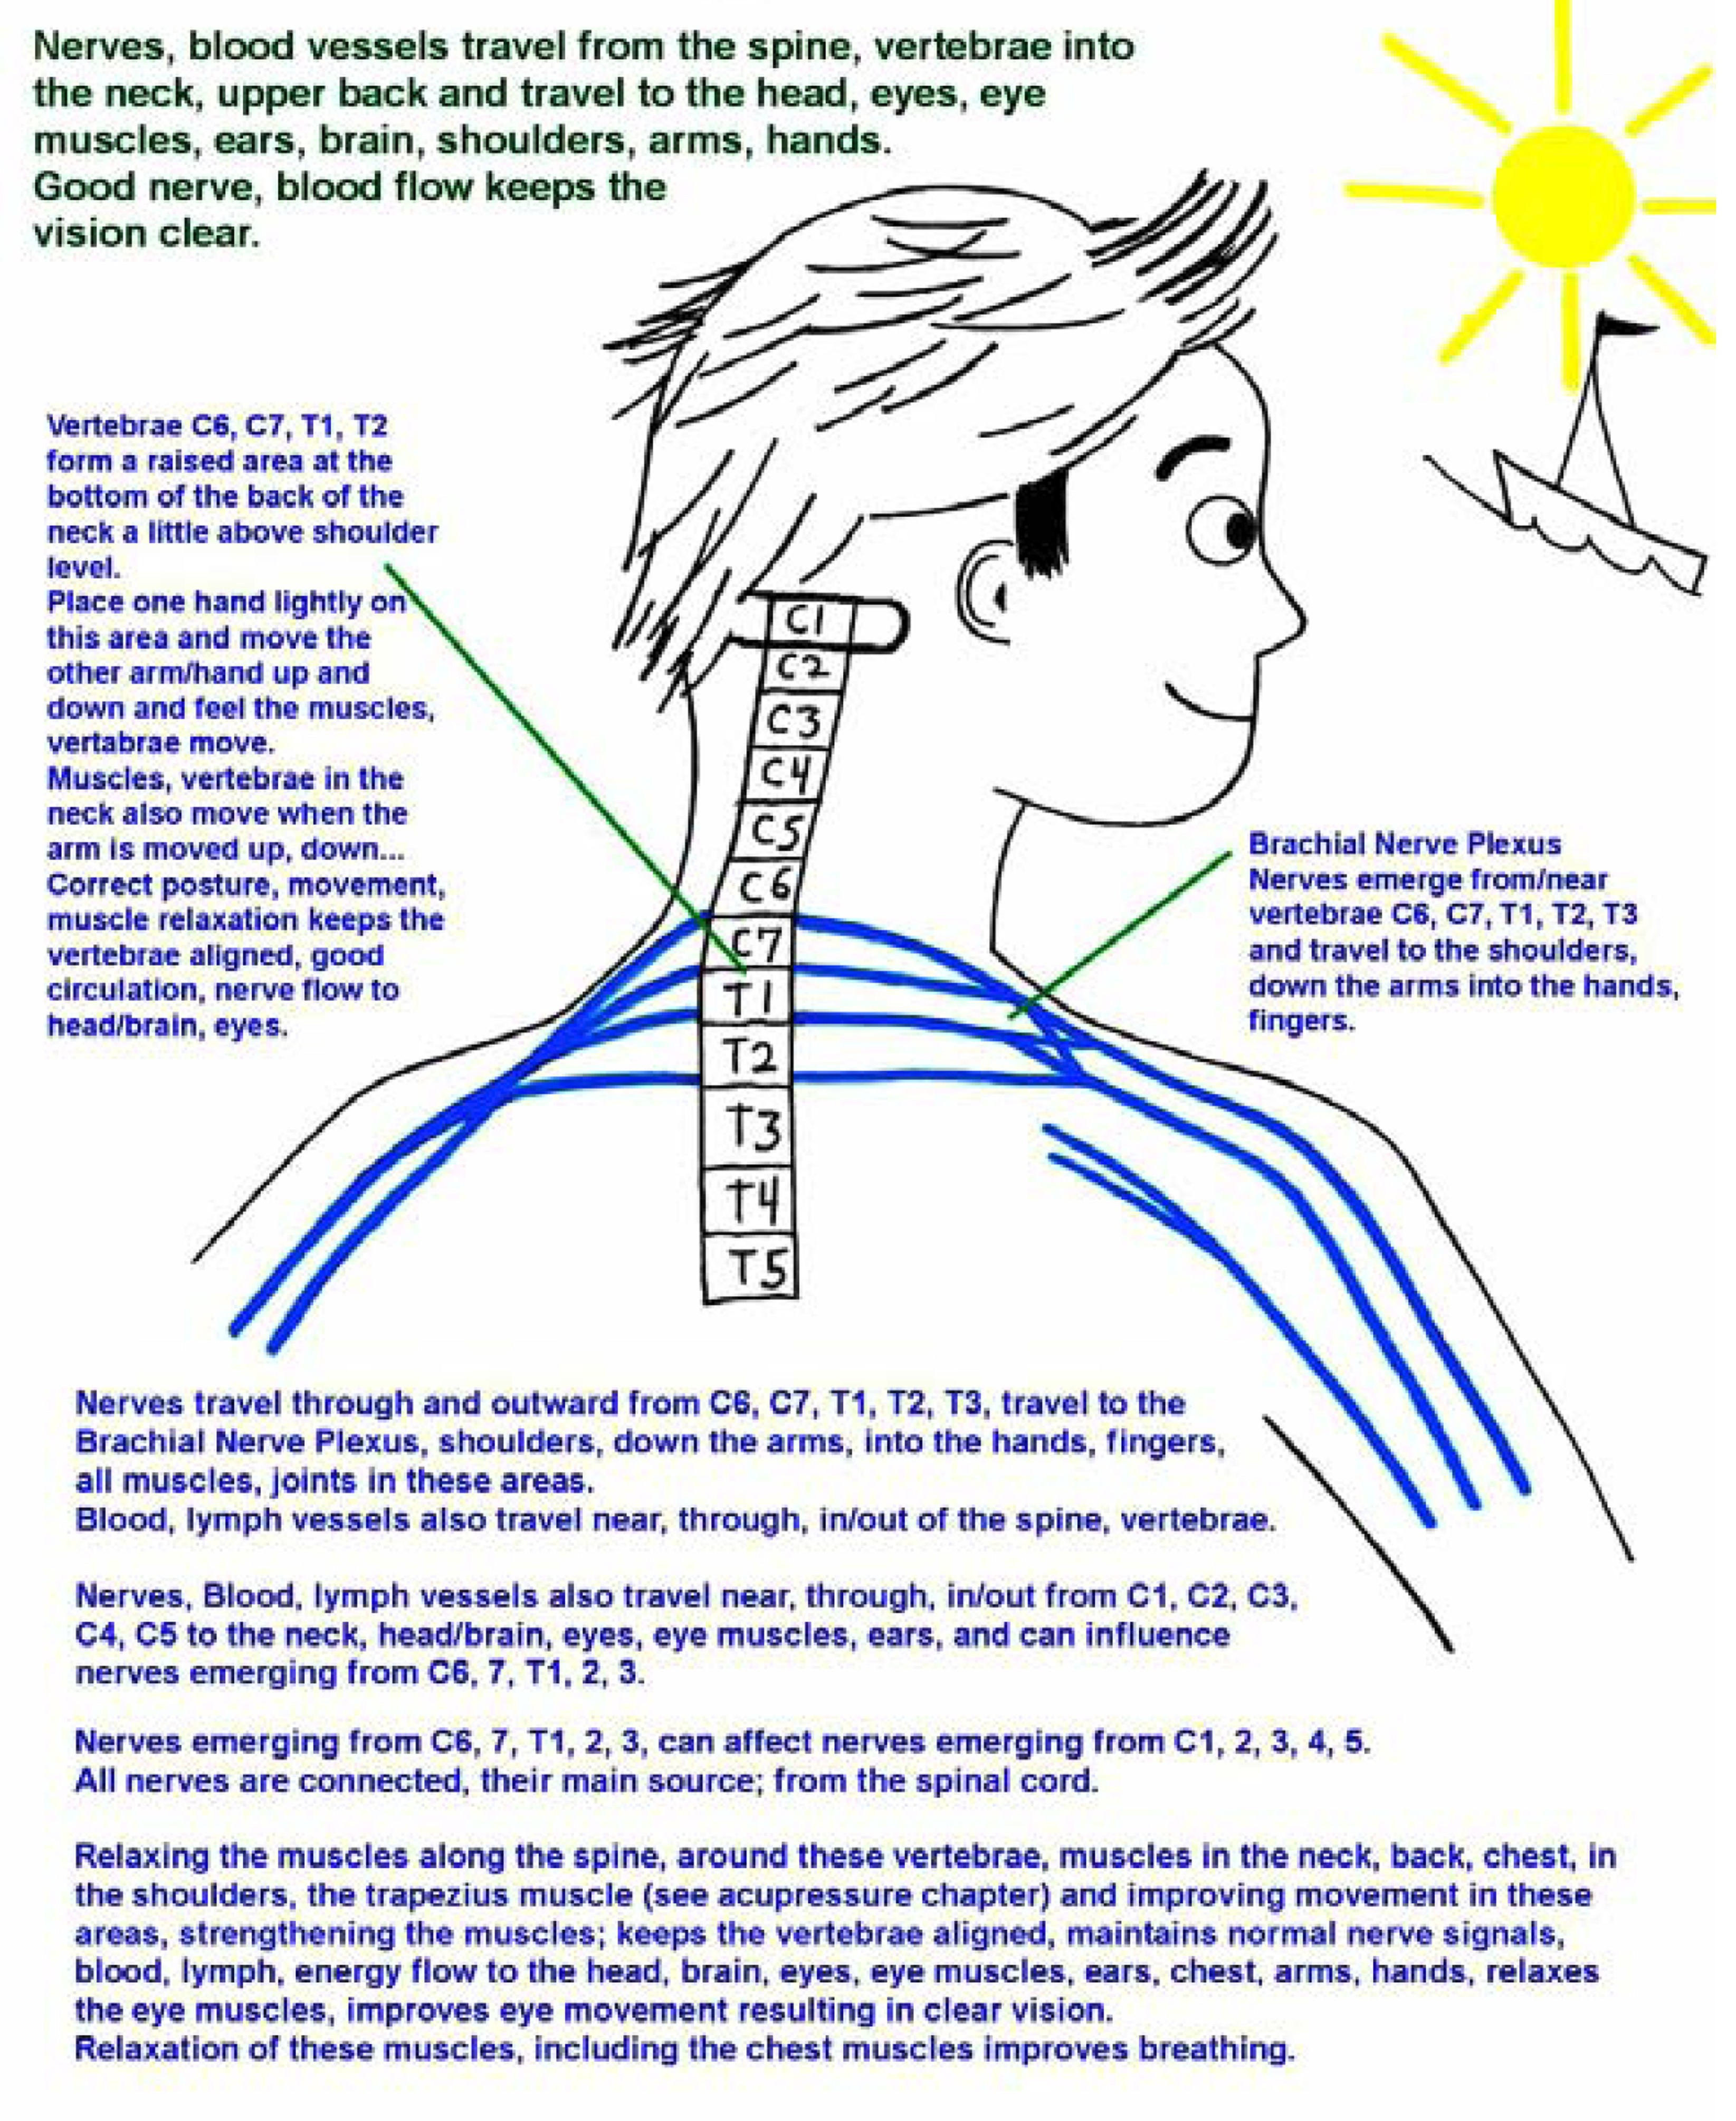 Physical Therapy For Relaxed Shoulders Neck Eye Muscles And